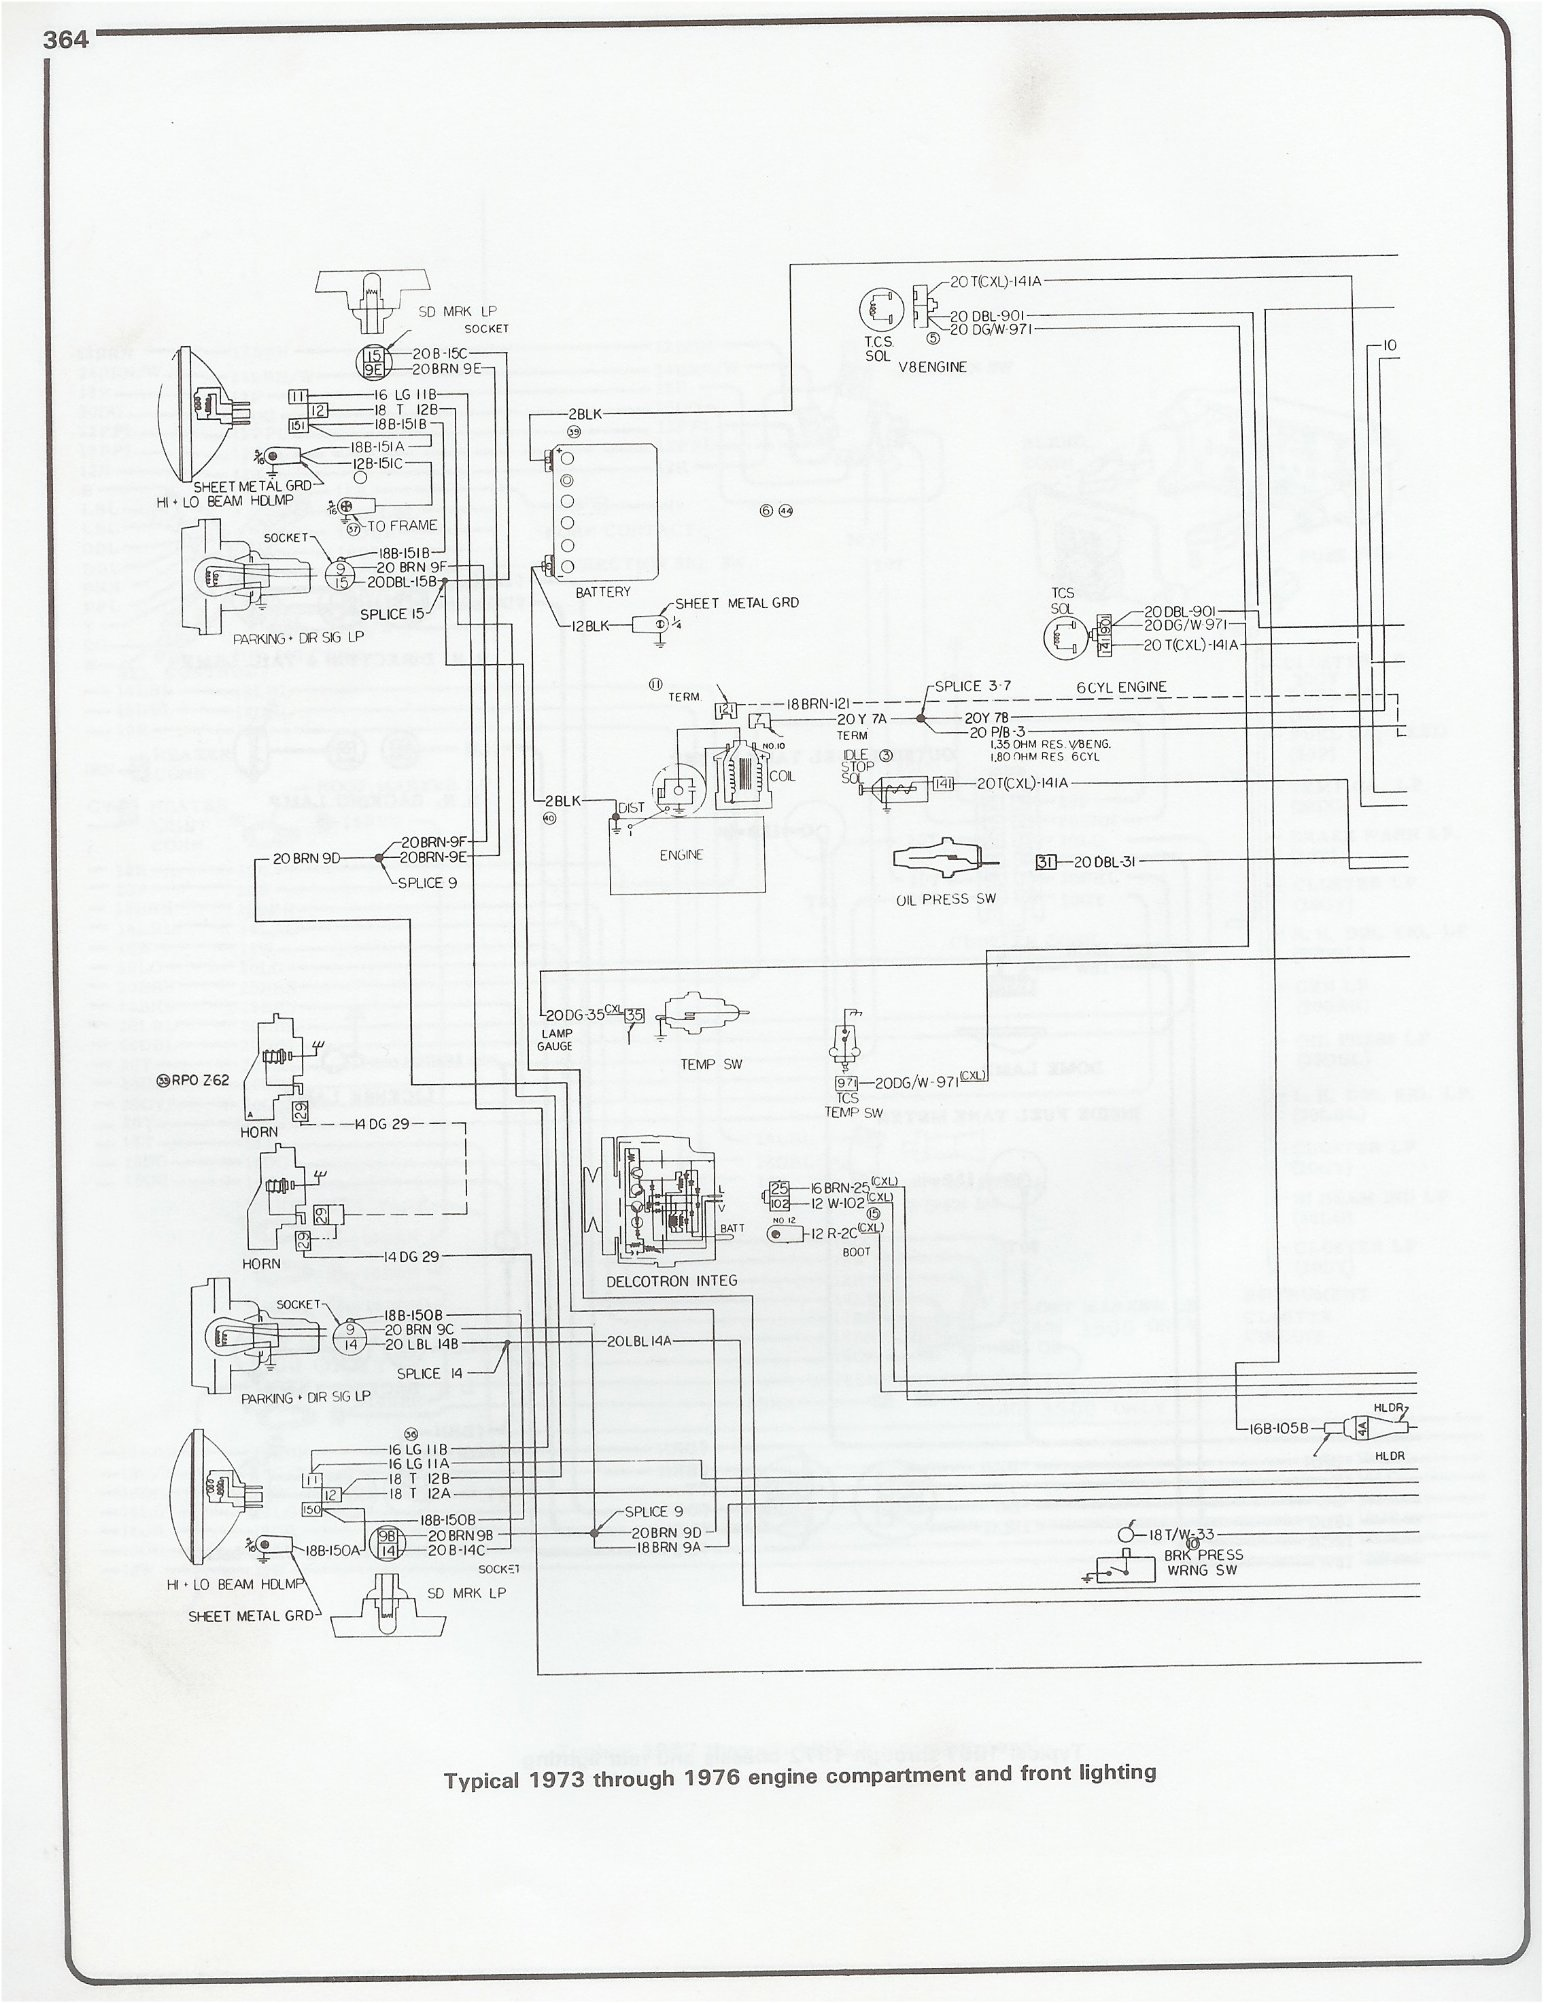 84 K20 Wiring Diagram Free Picture Schematic Library Push On Get Image About C K Trucks 1980 73 76 Engine And Front Lighting